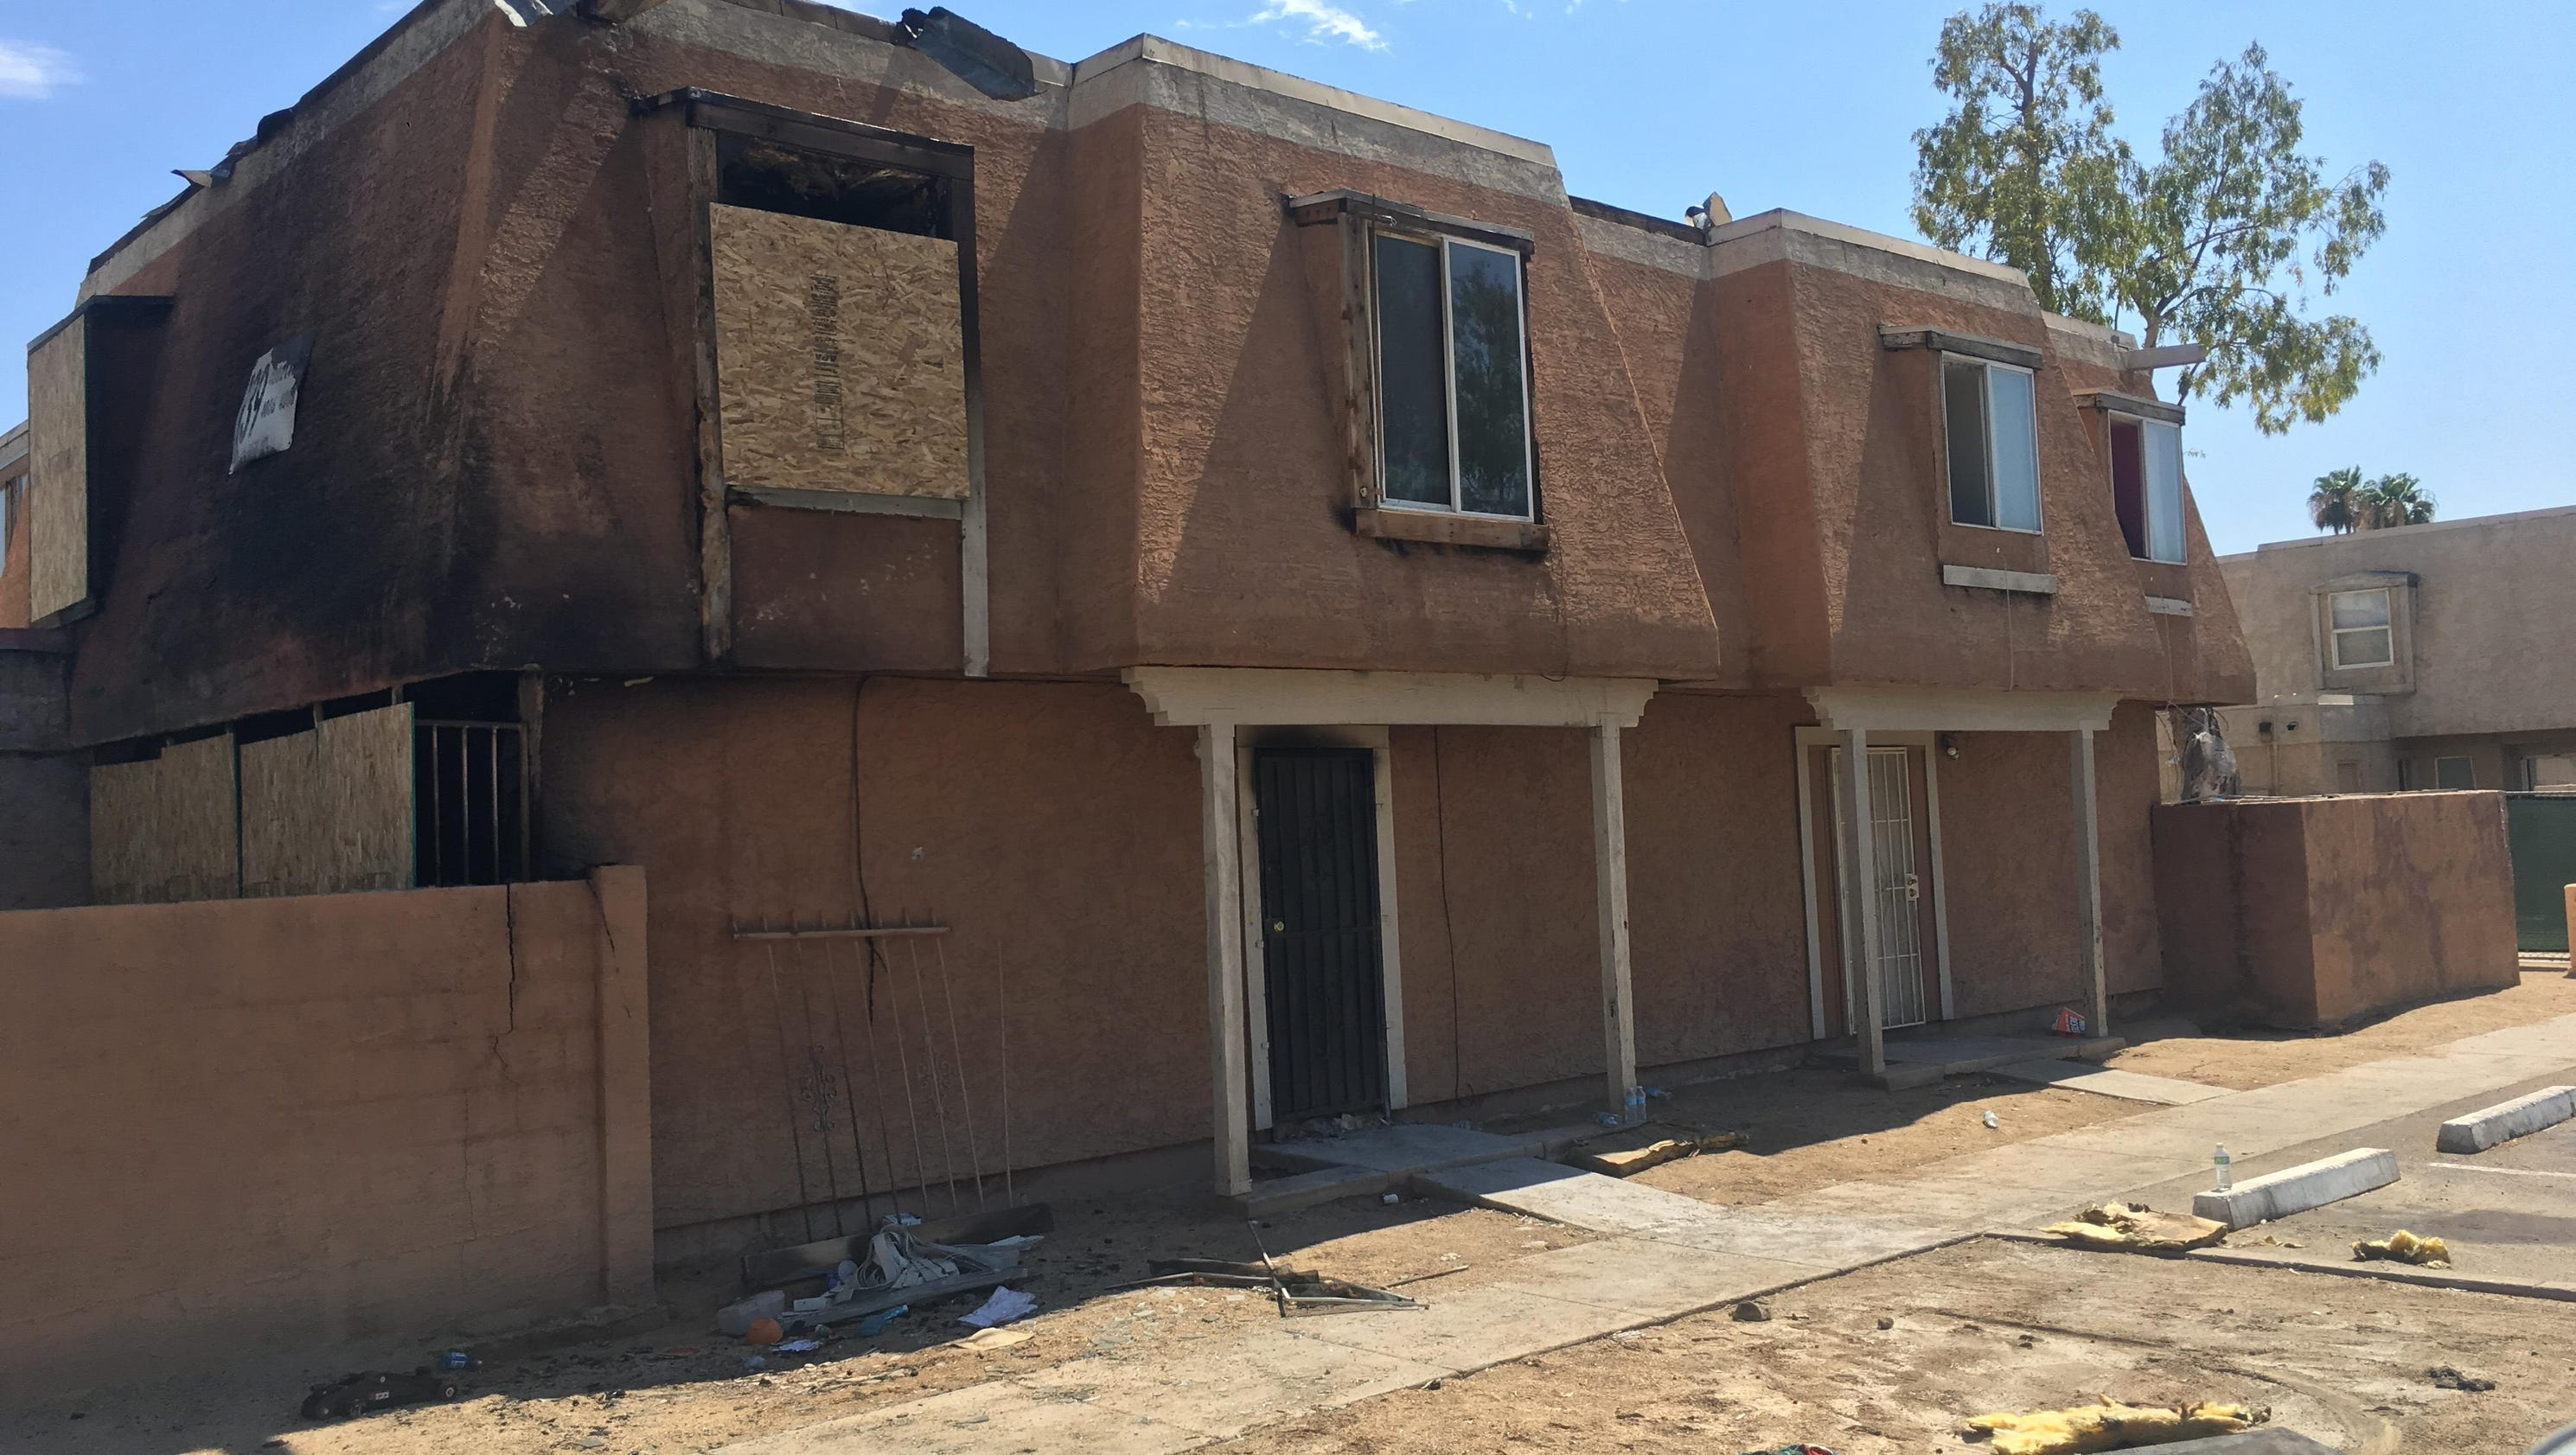 one killed in phoenix apartment fire, several injured